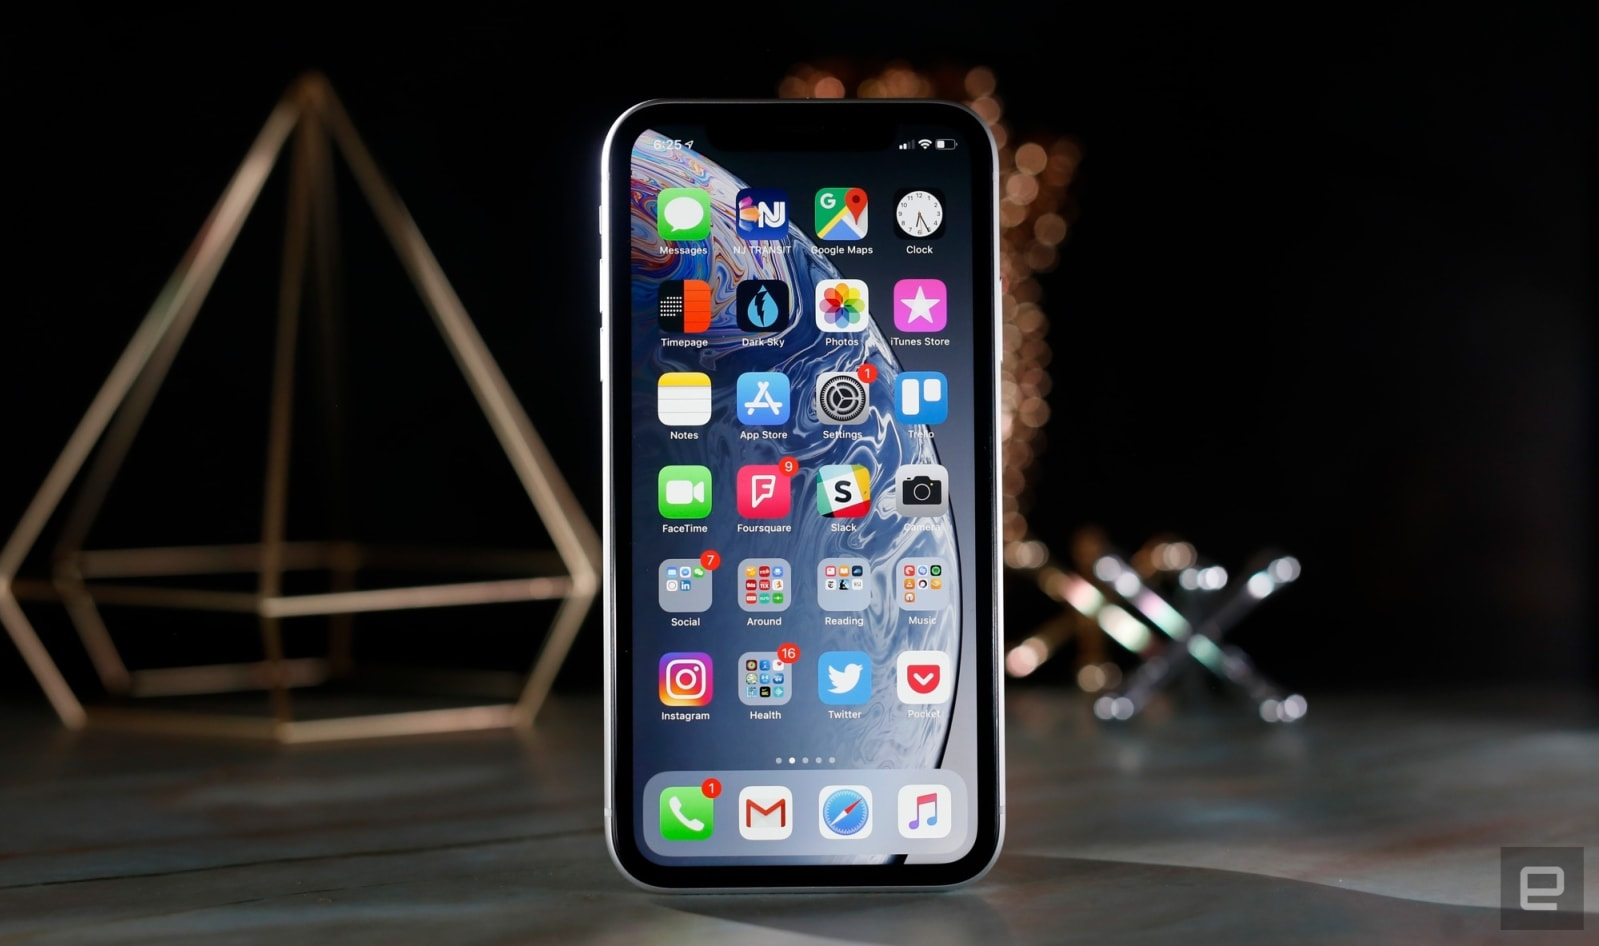 Recommended Reading: Blame the apps for iPhone privacy woes | Apple